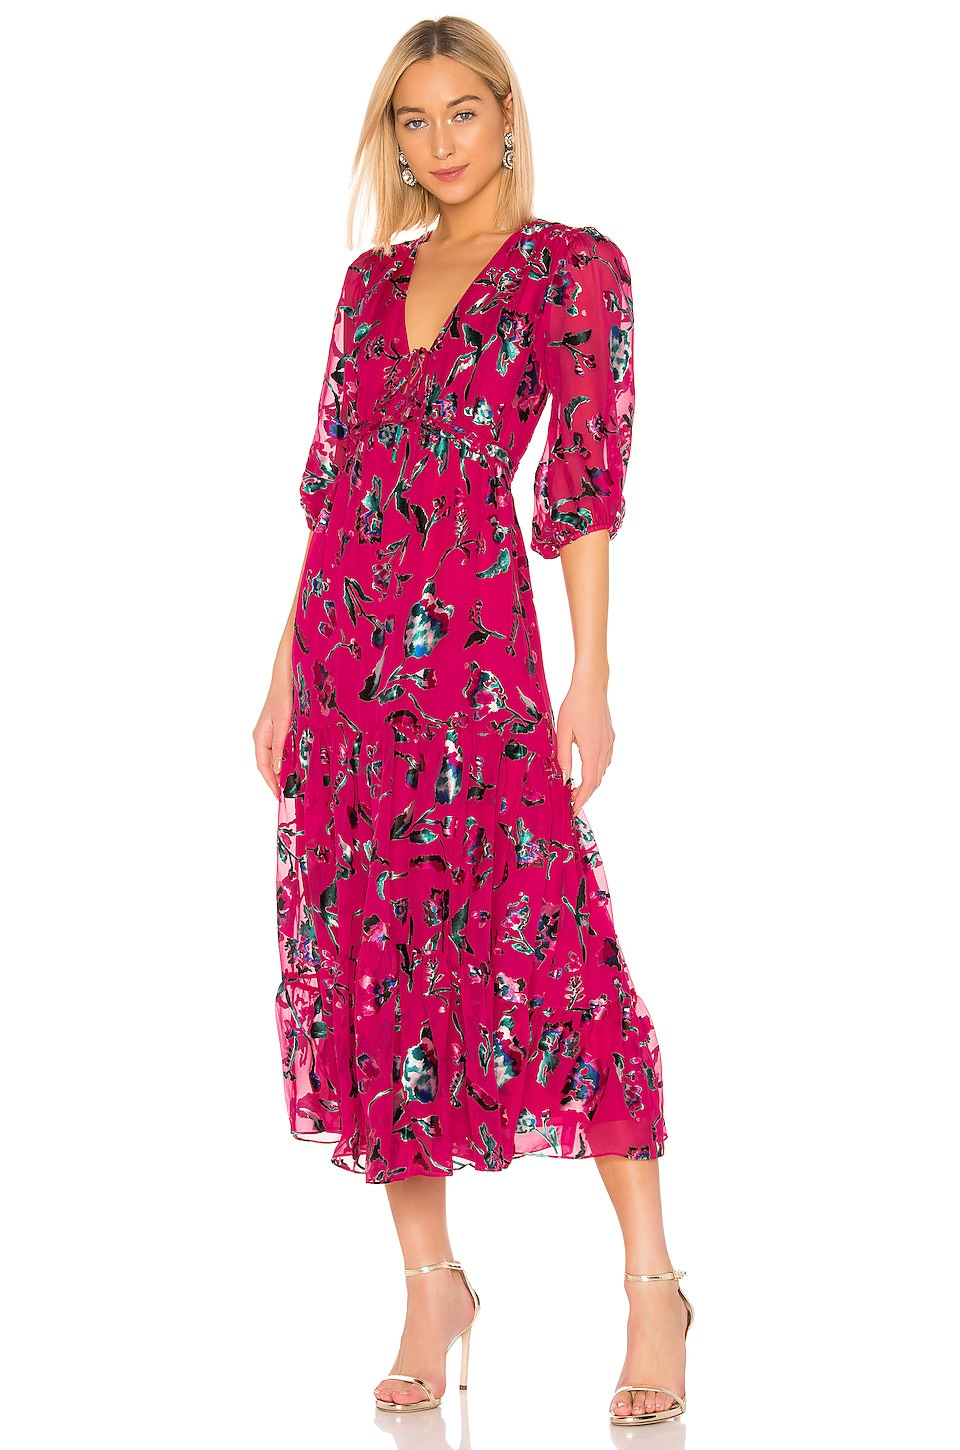 Tanya Taylor Dulce Floral Dress in Hot Pink